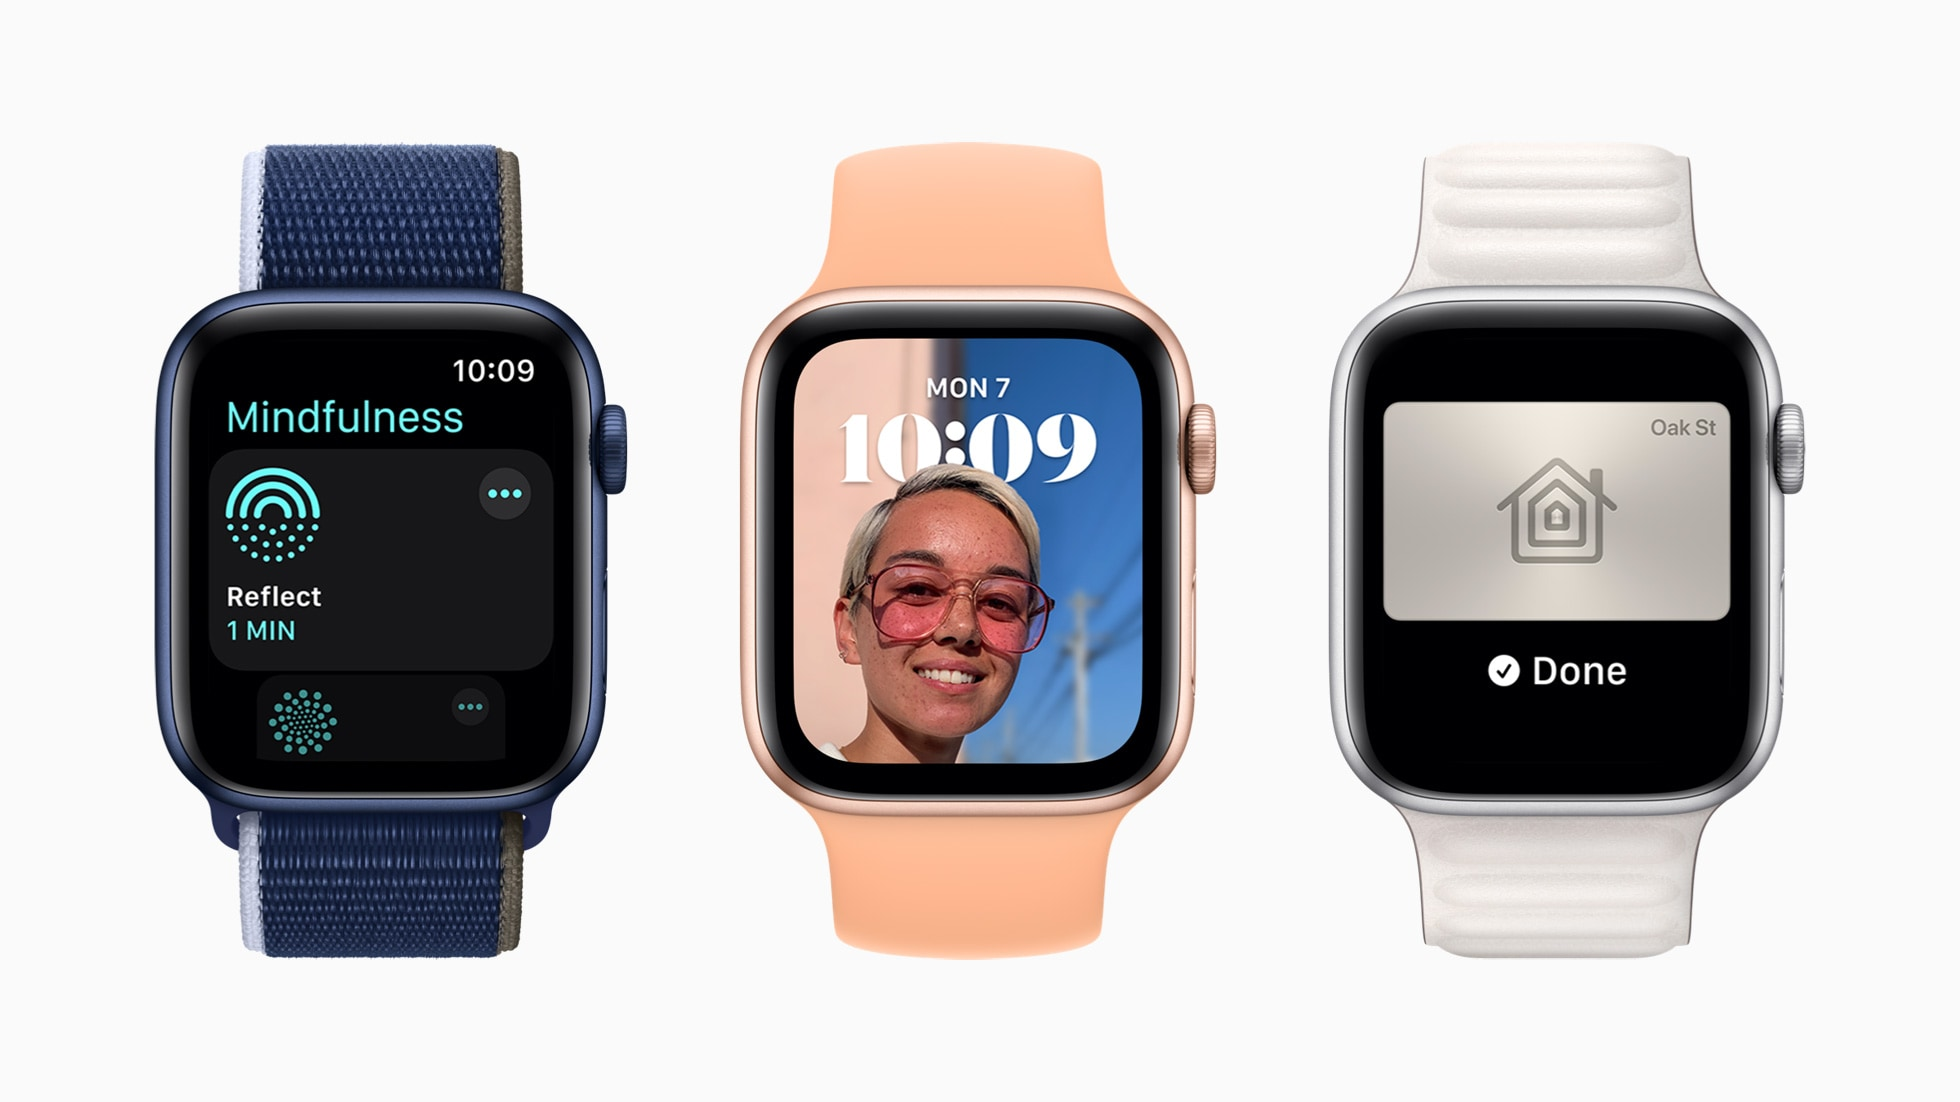 Now, do even MORE with the Apple Watch with watchOS 8